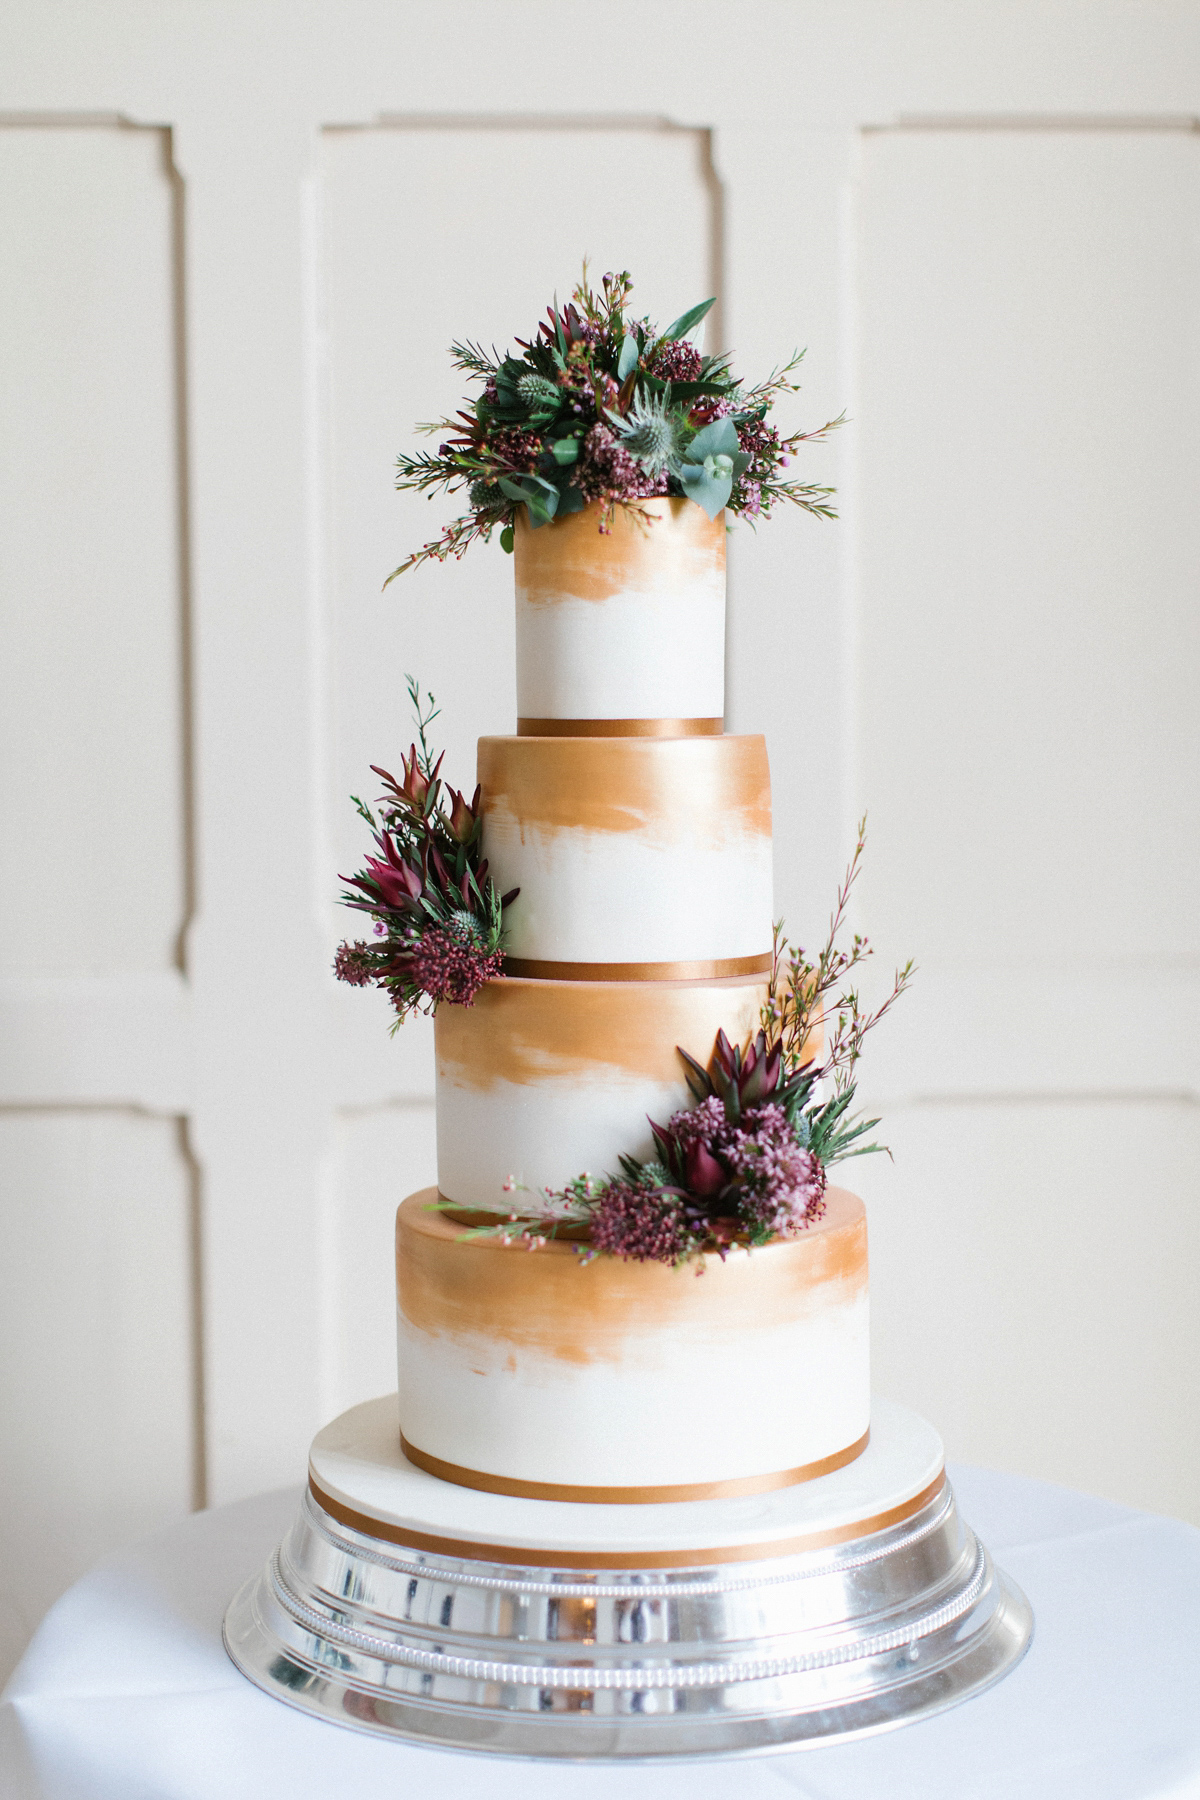 Cake Decorating Course Northumberland : An Art Deco Glamour Inspired Winter Wedding with ...